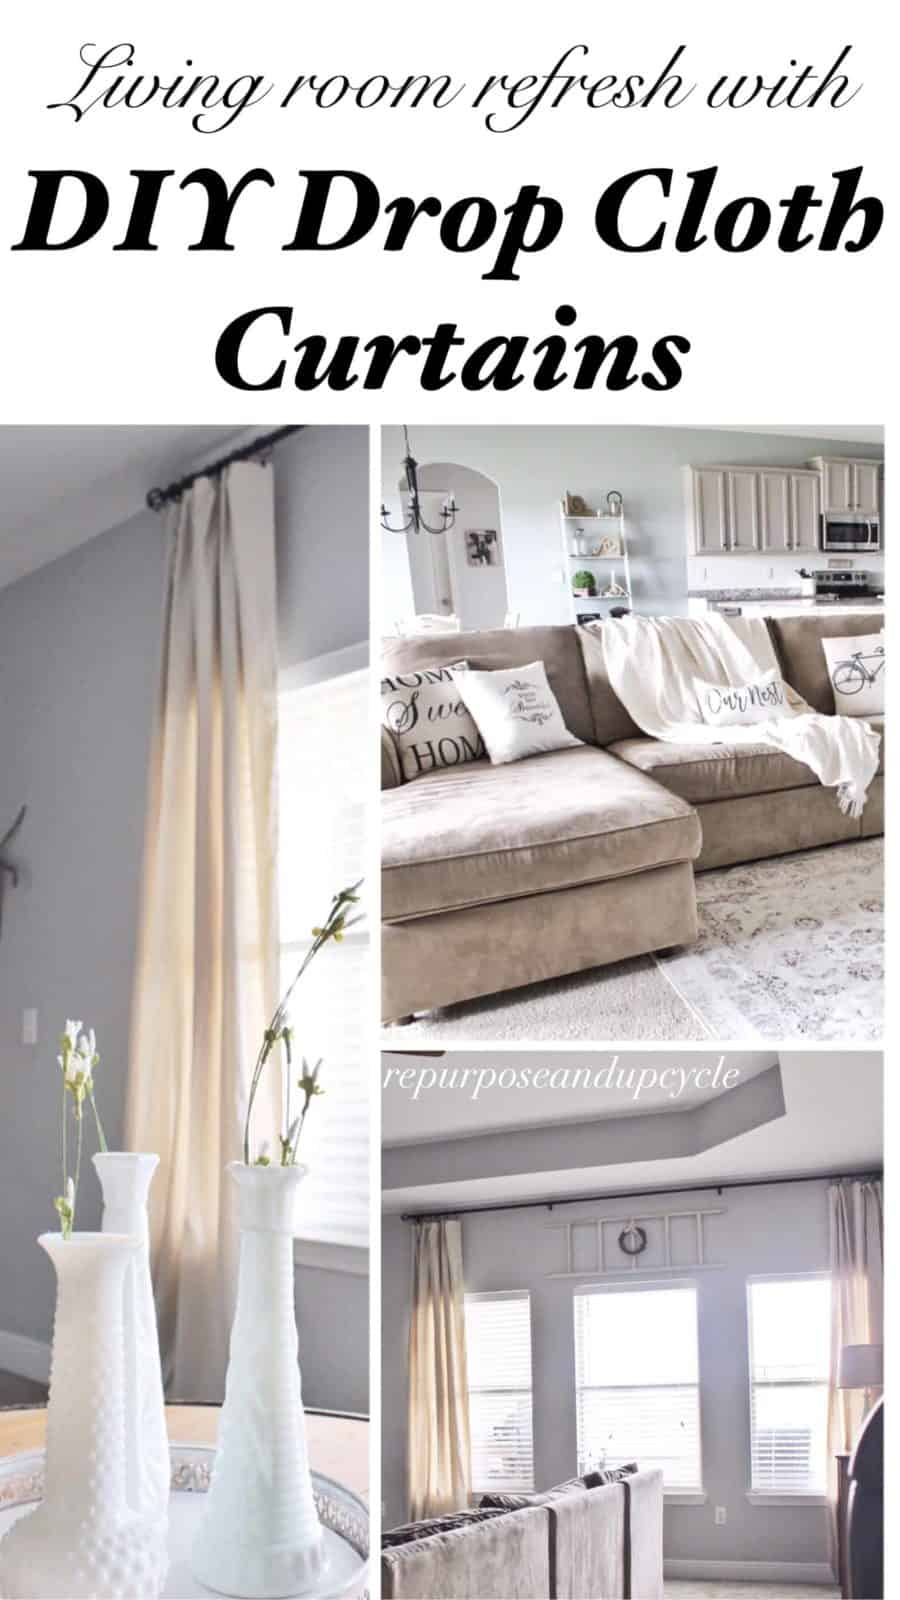 photos of curtains in living rooms chairs for room big lots modern farmhouse refresh with diy drop cloth